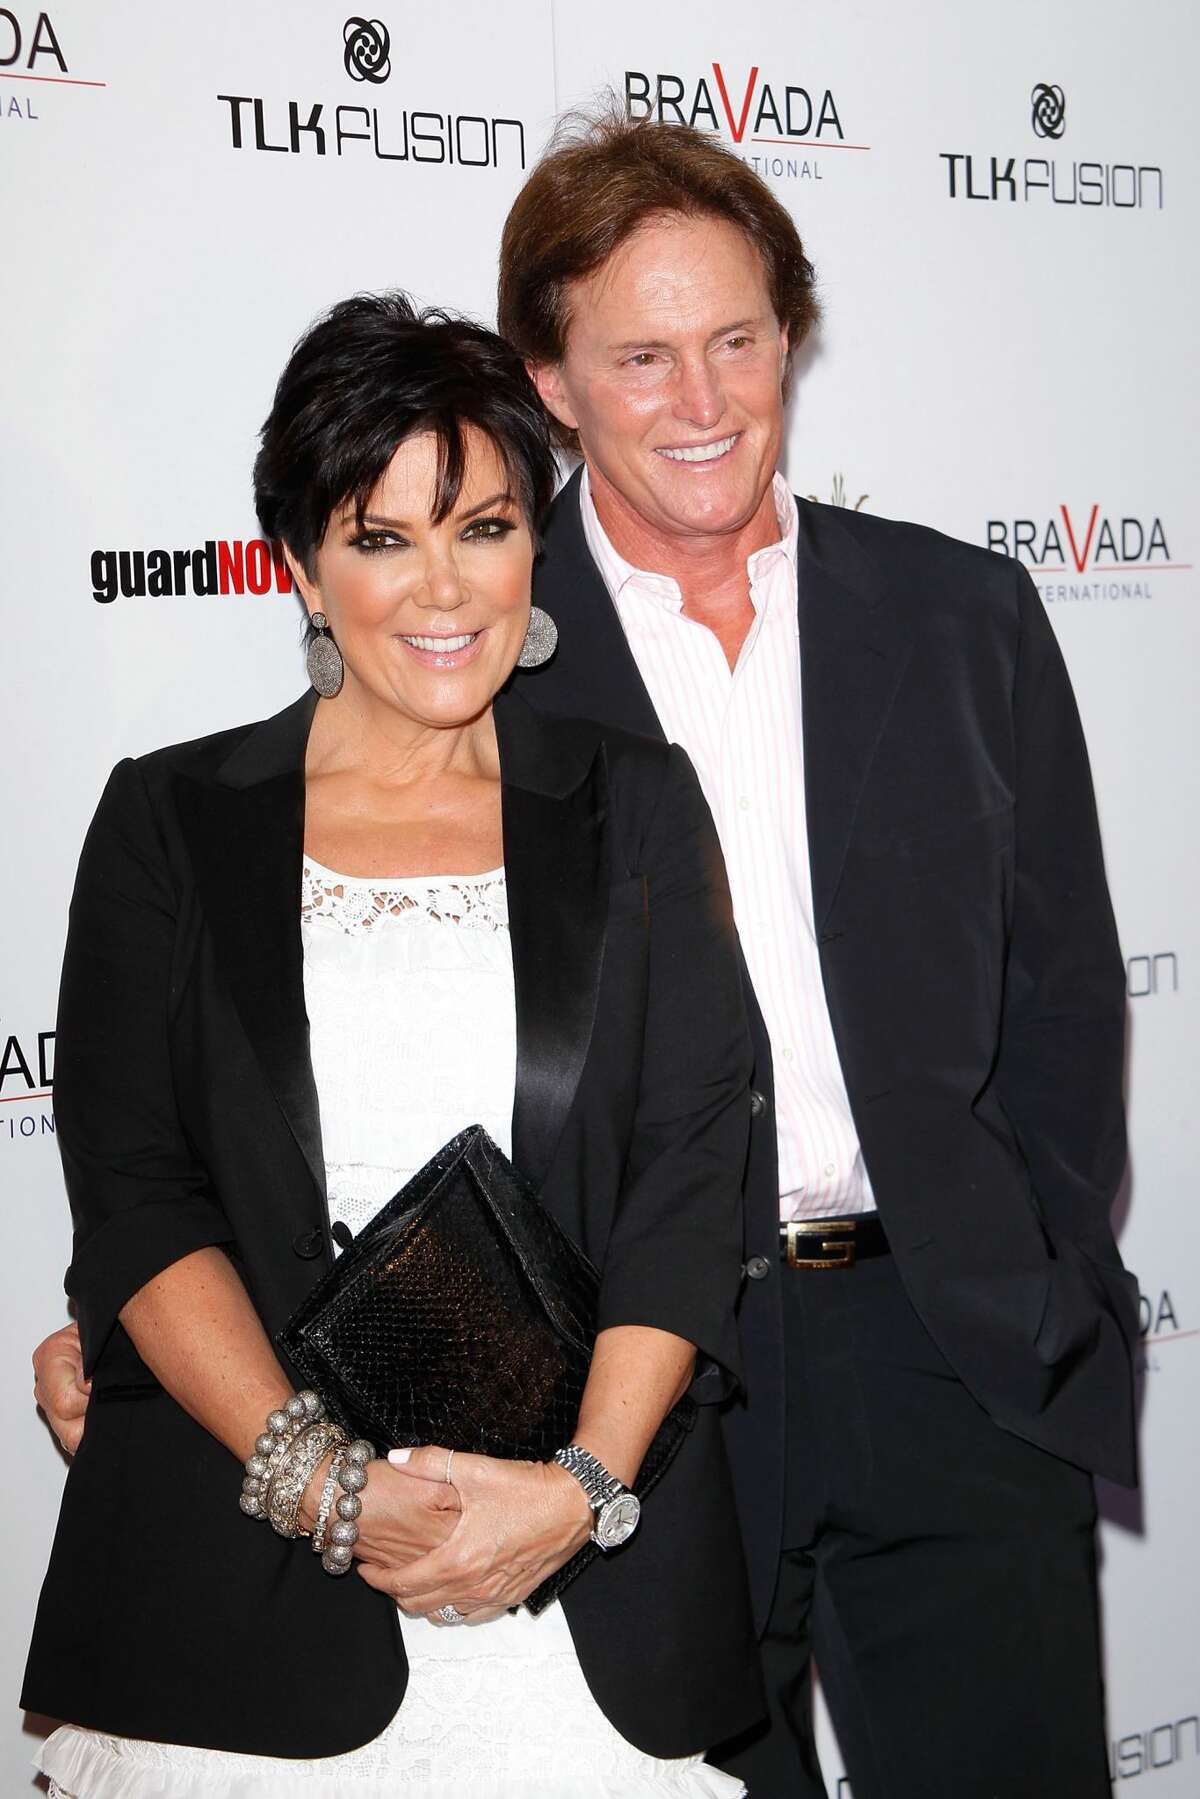 Couple: Kris Jenner and Caitlyn Jenner Relationship: Married (1991-2015) Reality Show: Keeping up with the Kardashians